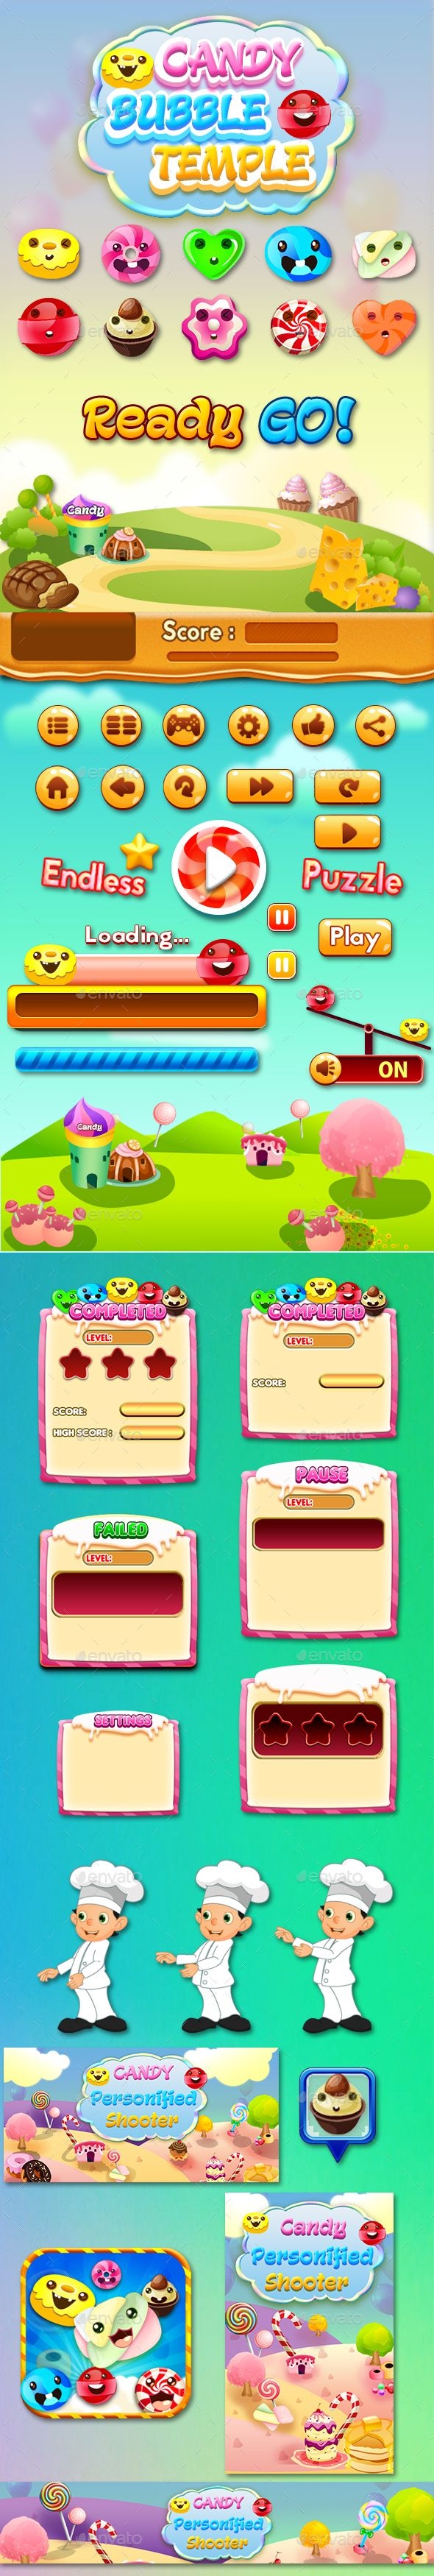 Bubble Shooter Unity Asset Reskin : Candy Bubble Temple - Game Kits Game Assets